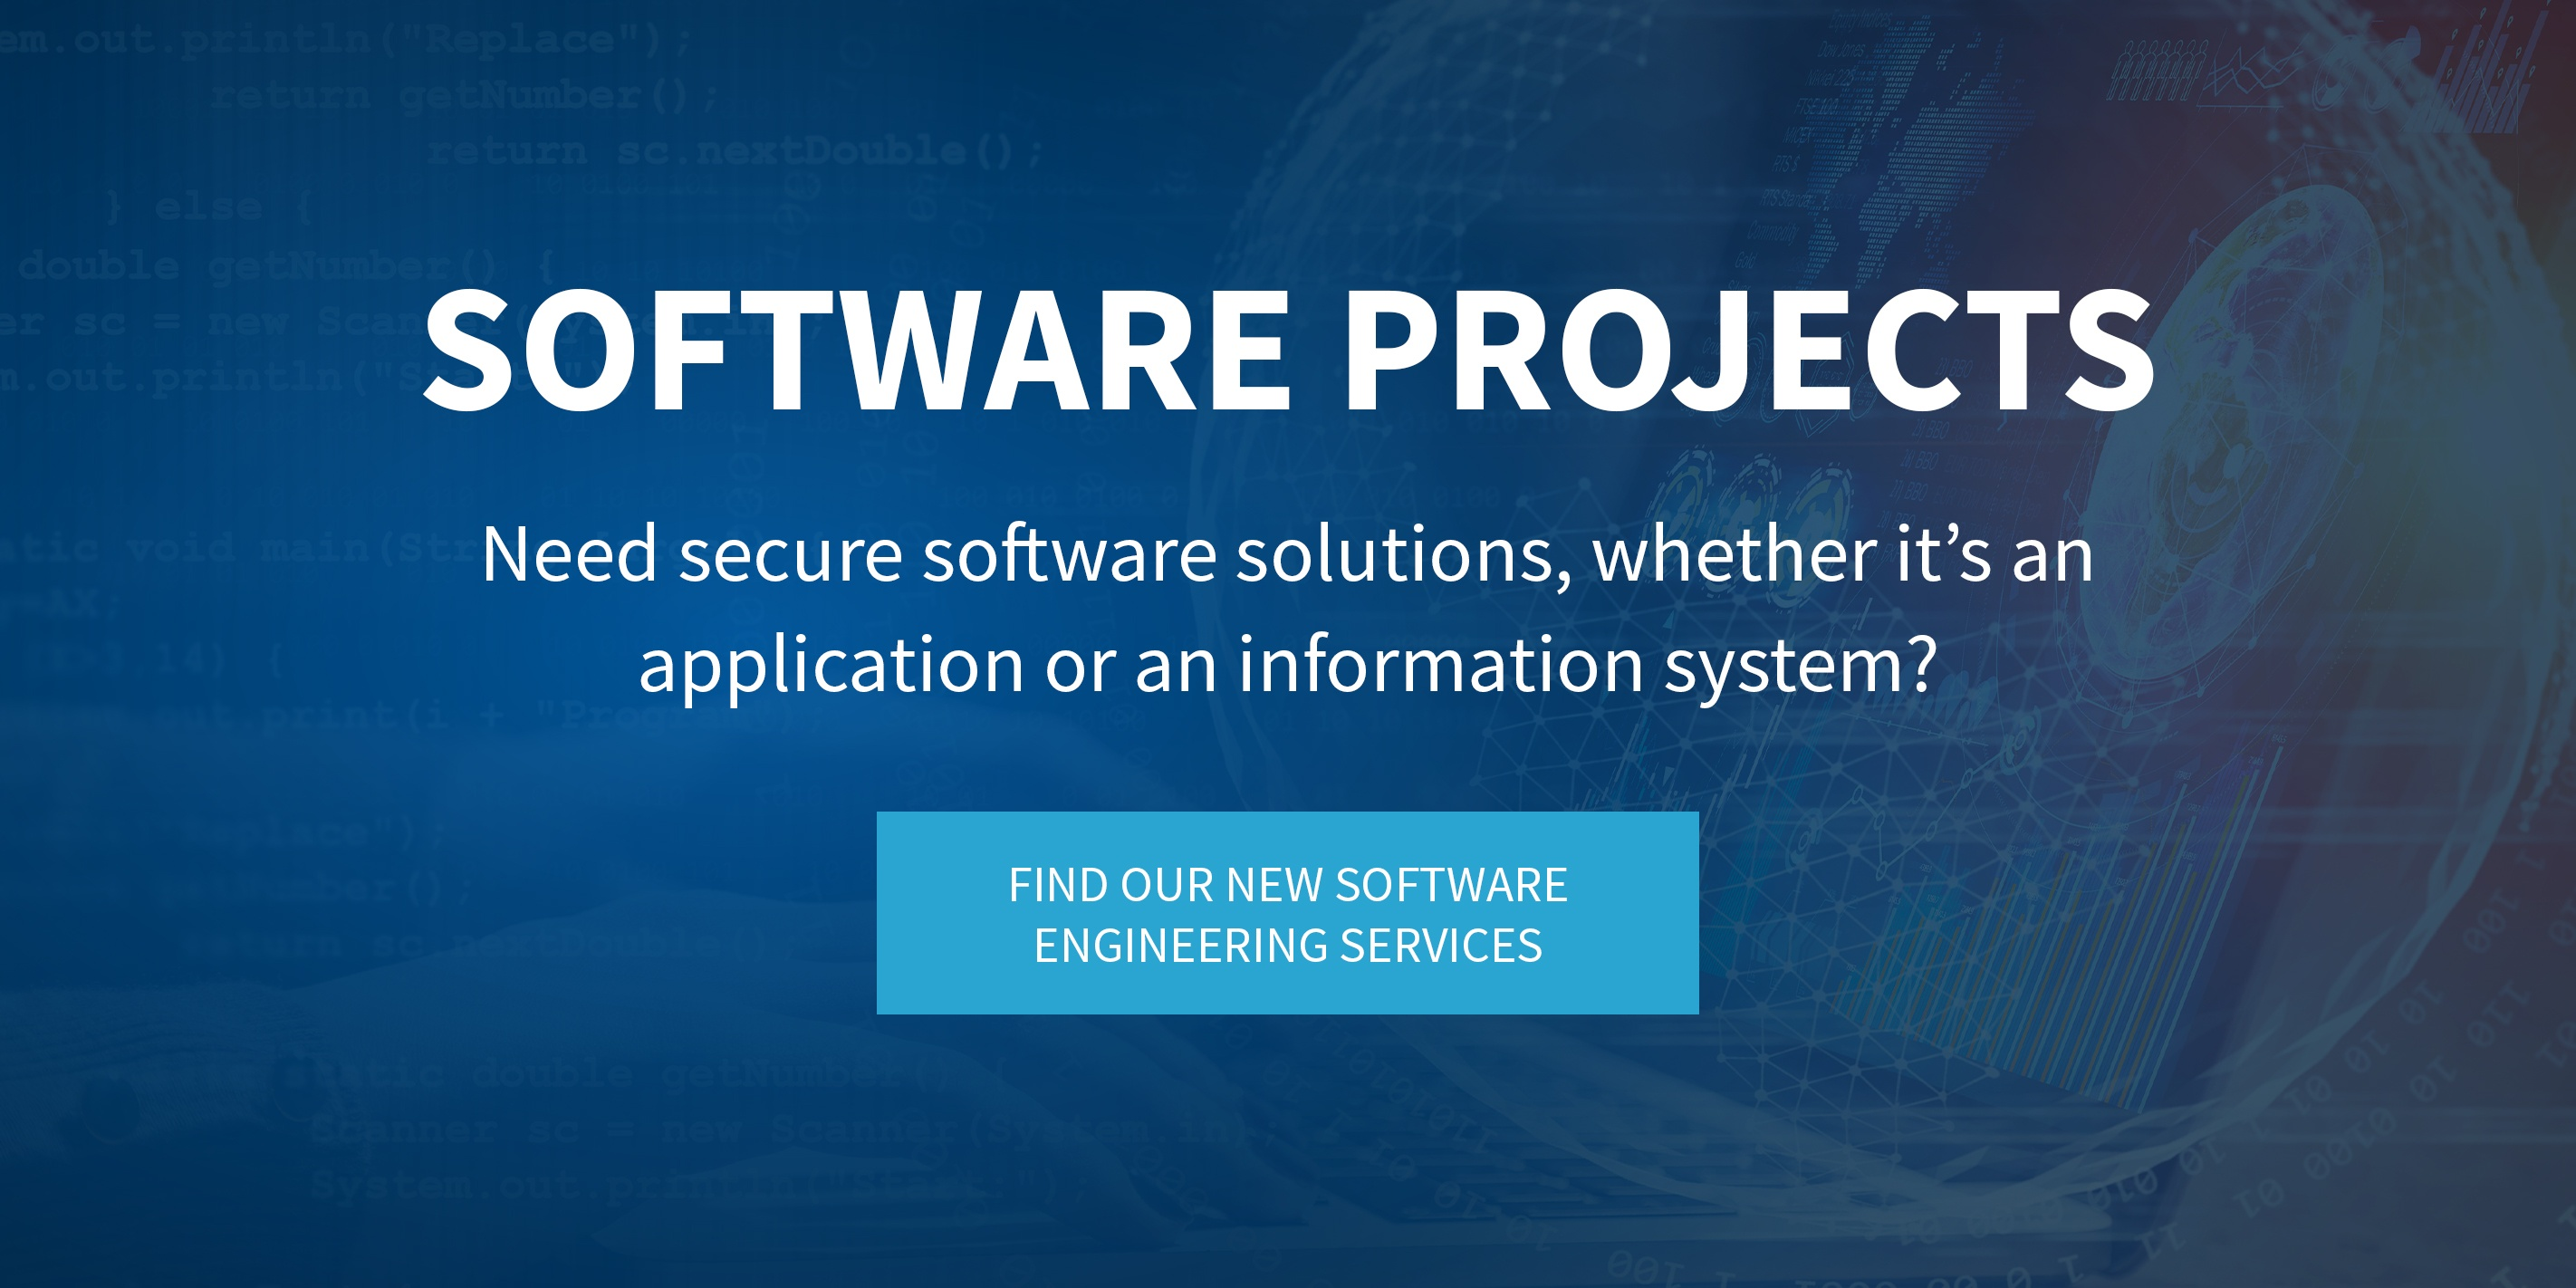 Need secure software solutions, an application or an information system? Find our new software engineering services.